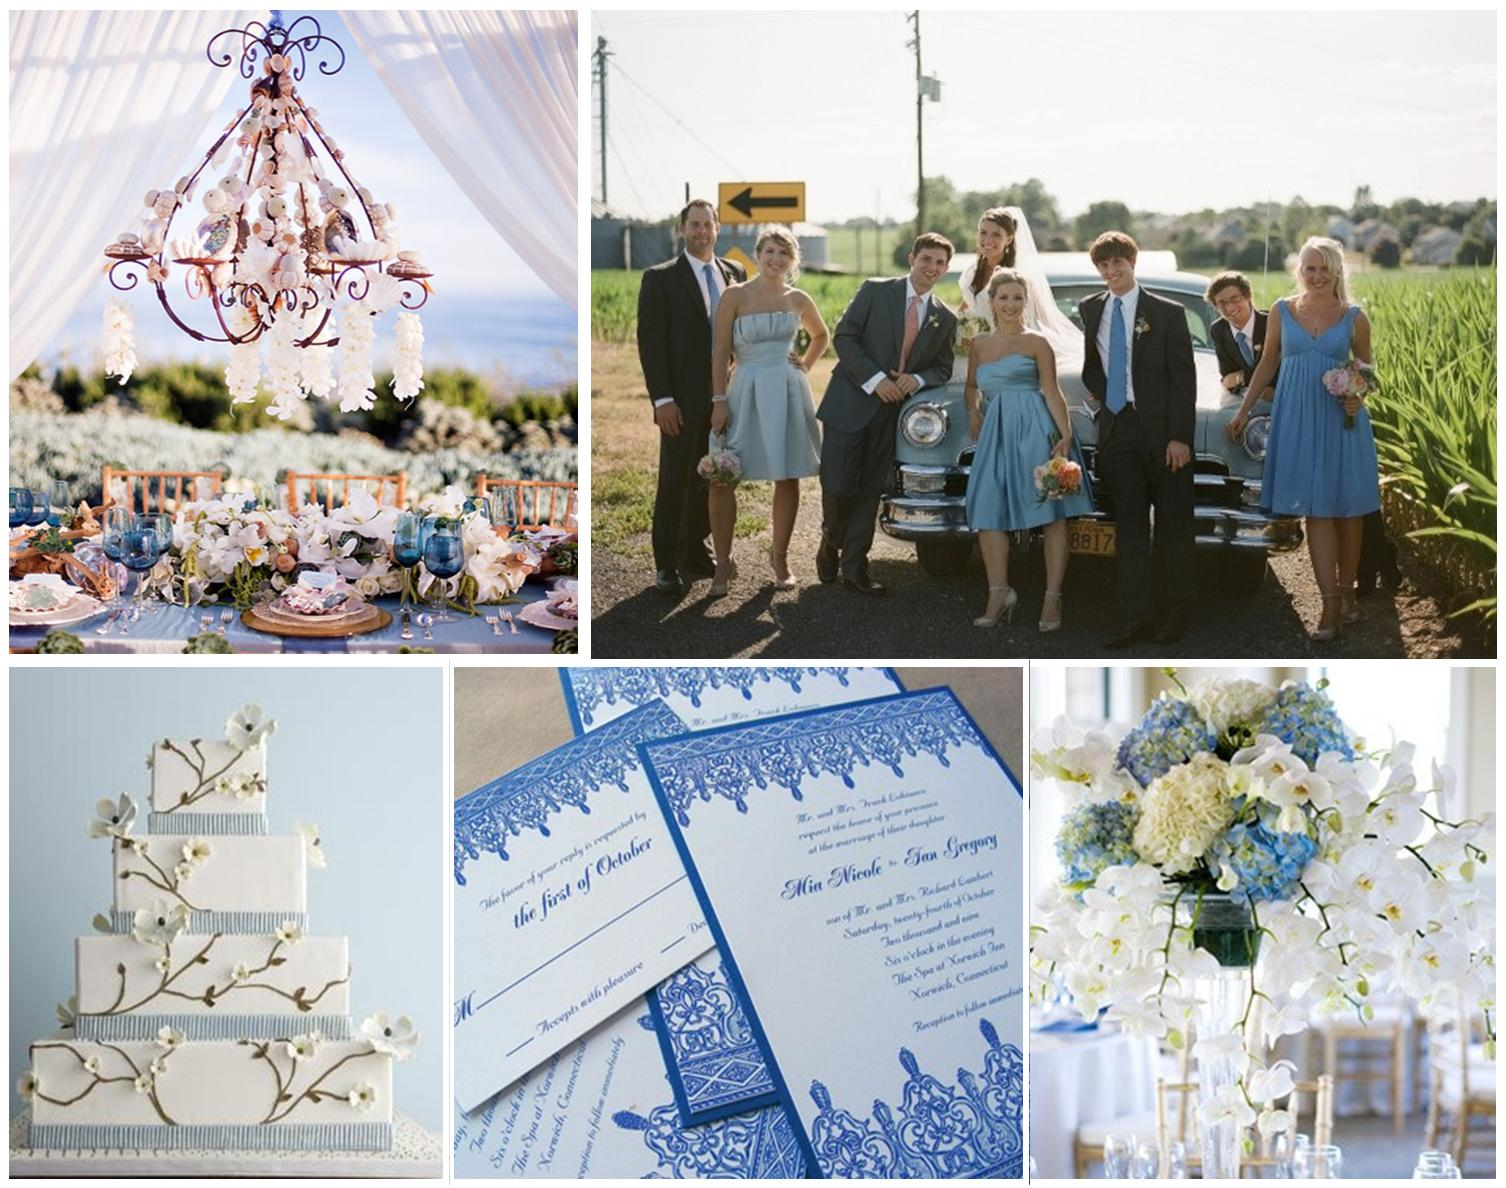 Quick Backyard Wedding Ideas : Sources (clockwise, starting from top left corner)